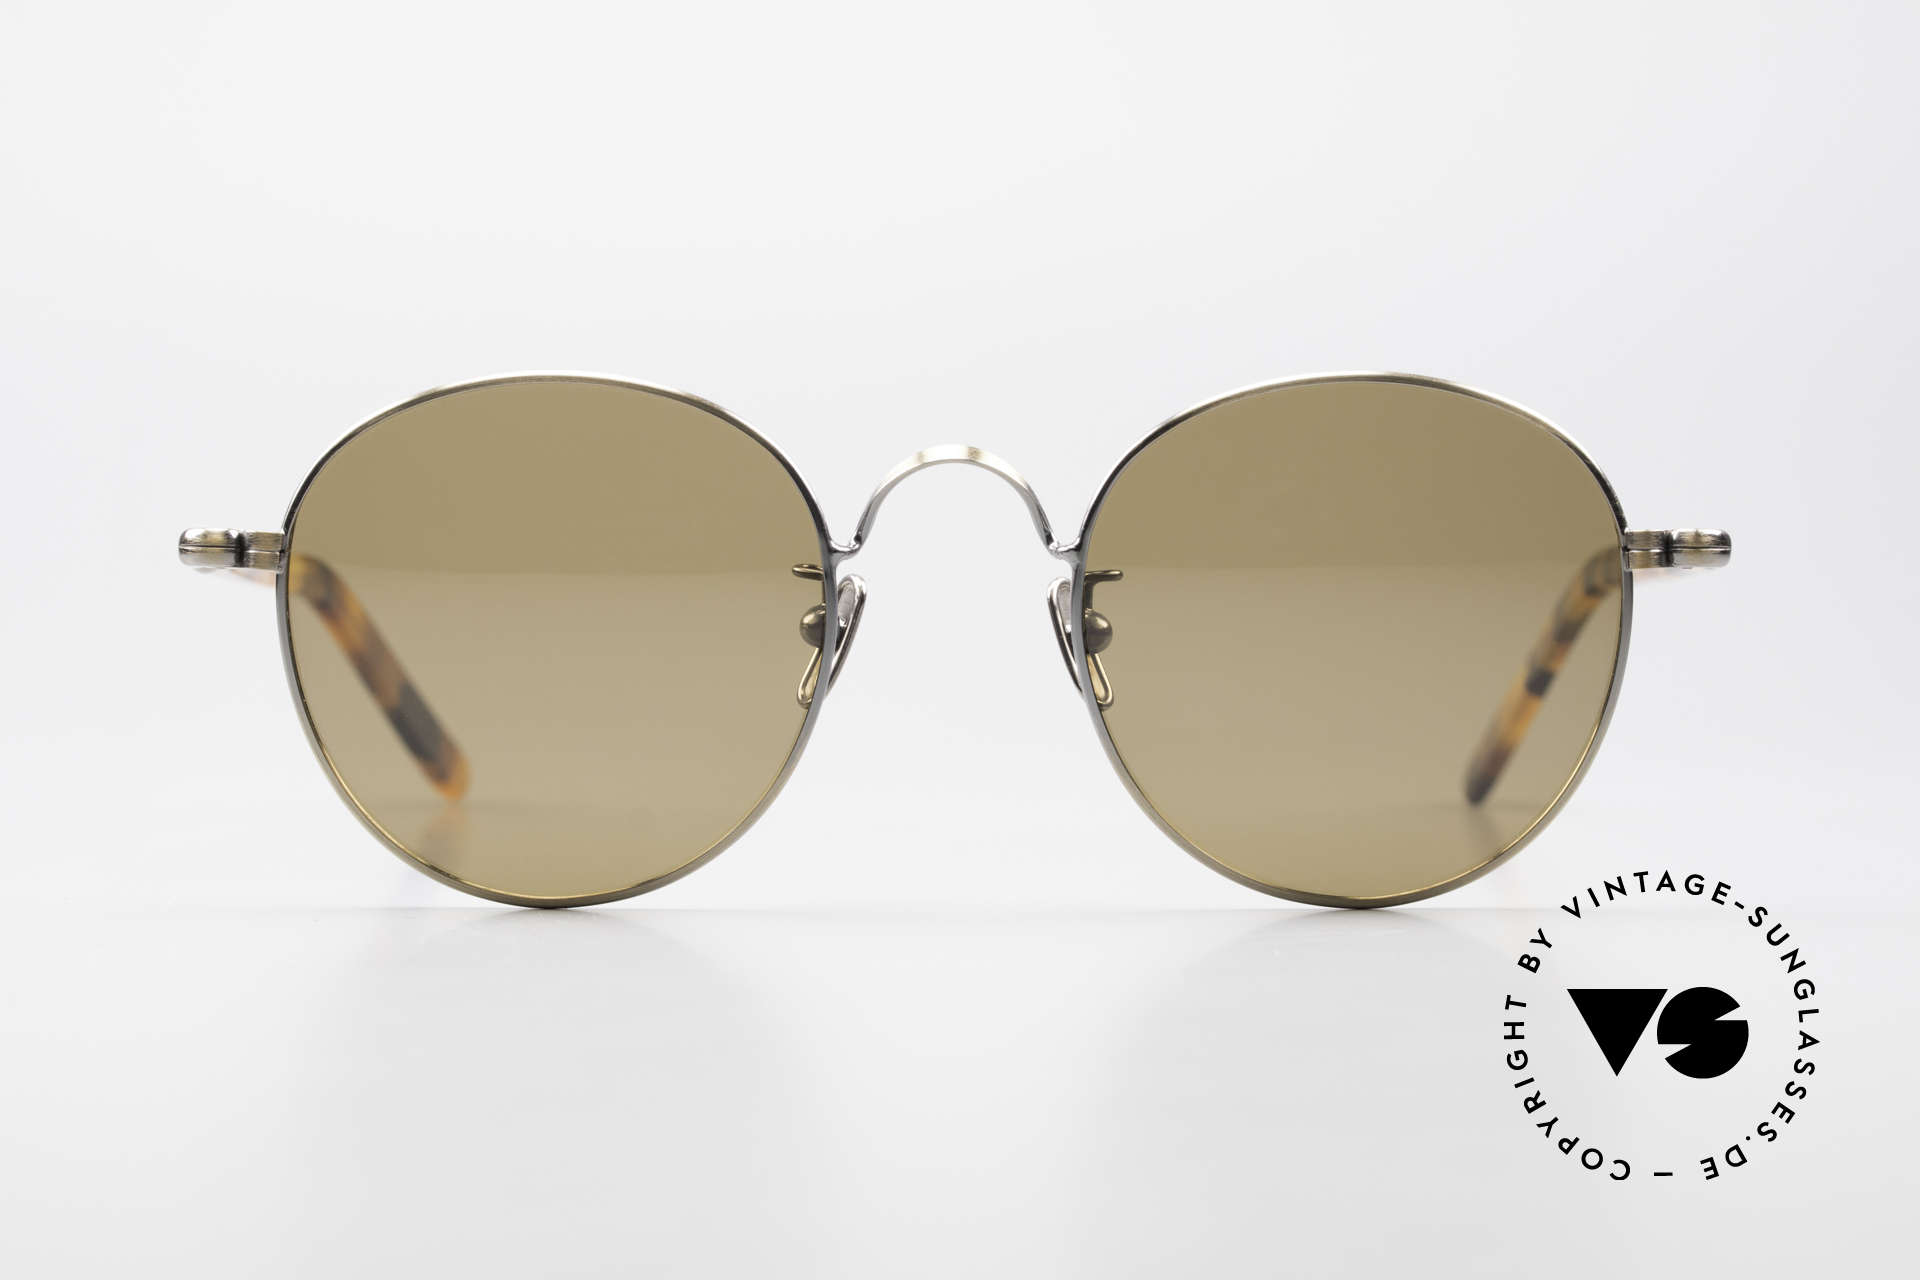 Lunor VA 111 Polarized Panto Sunglasses, without ostentatious logos (but in a timeless elegance), Made for Men